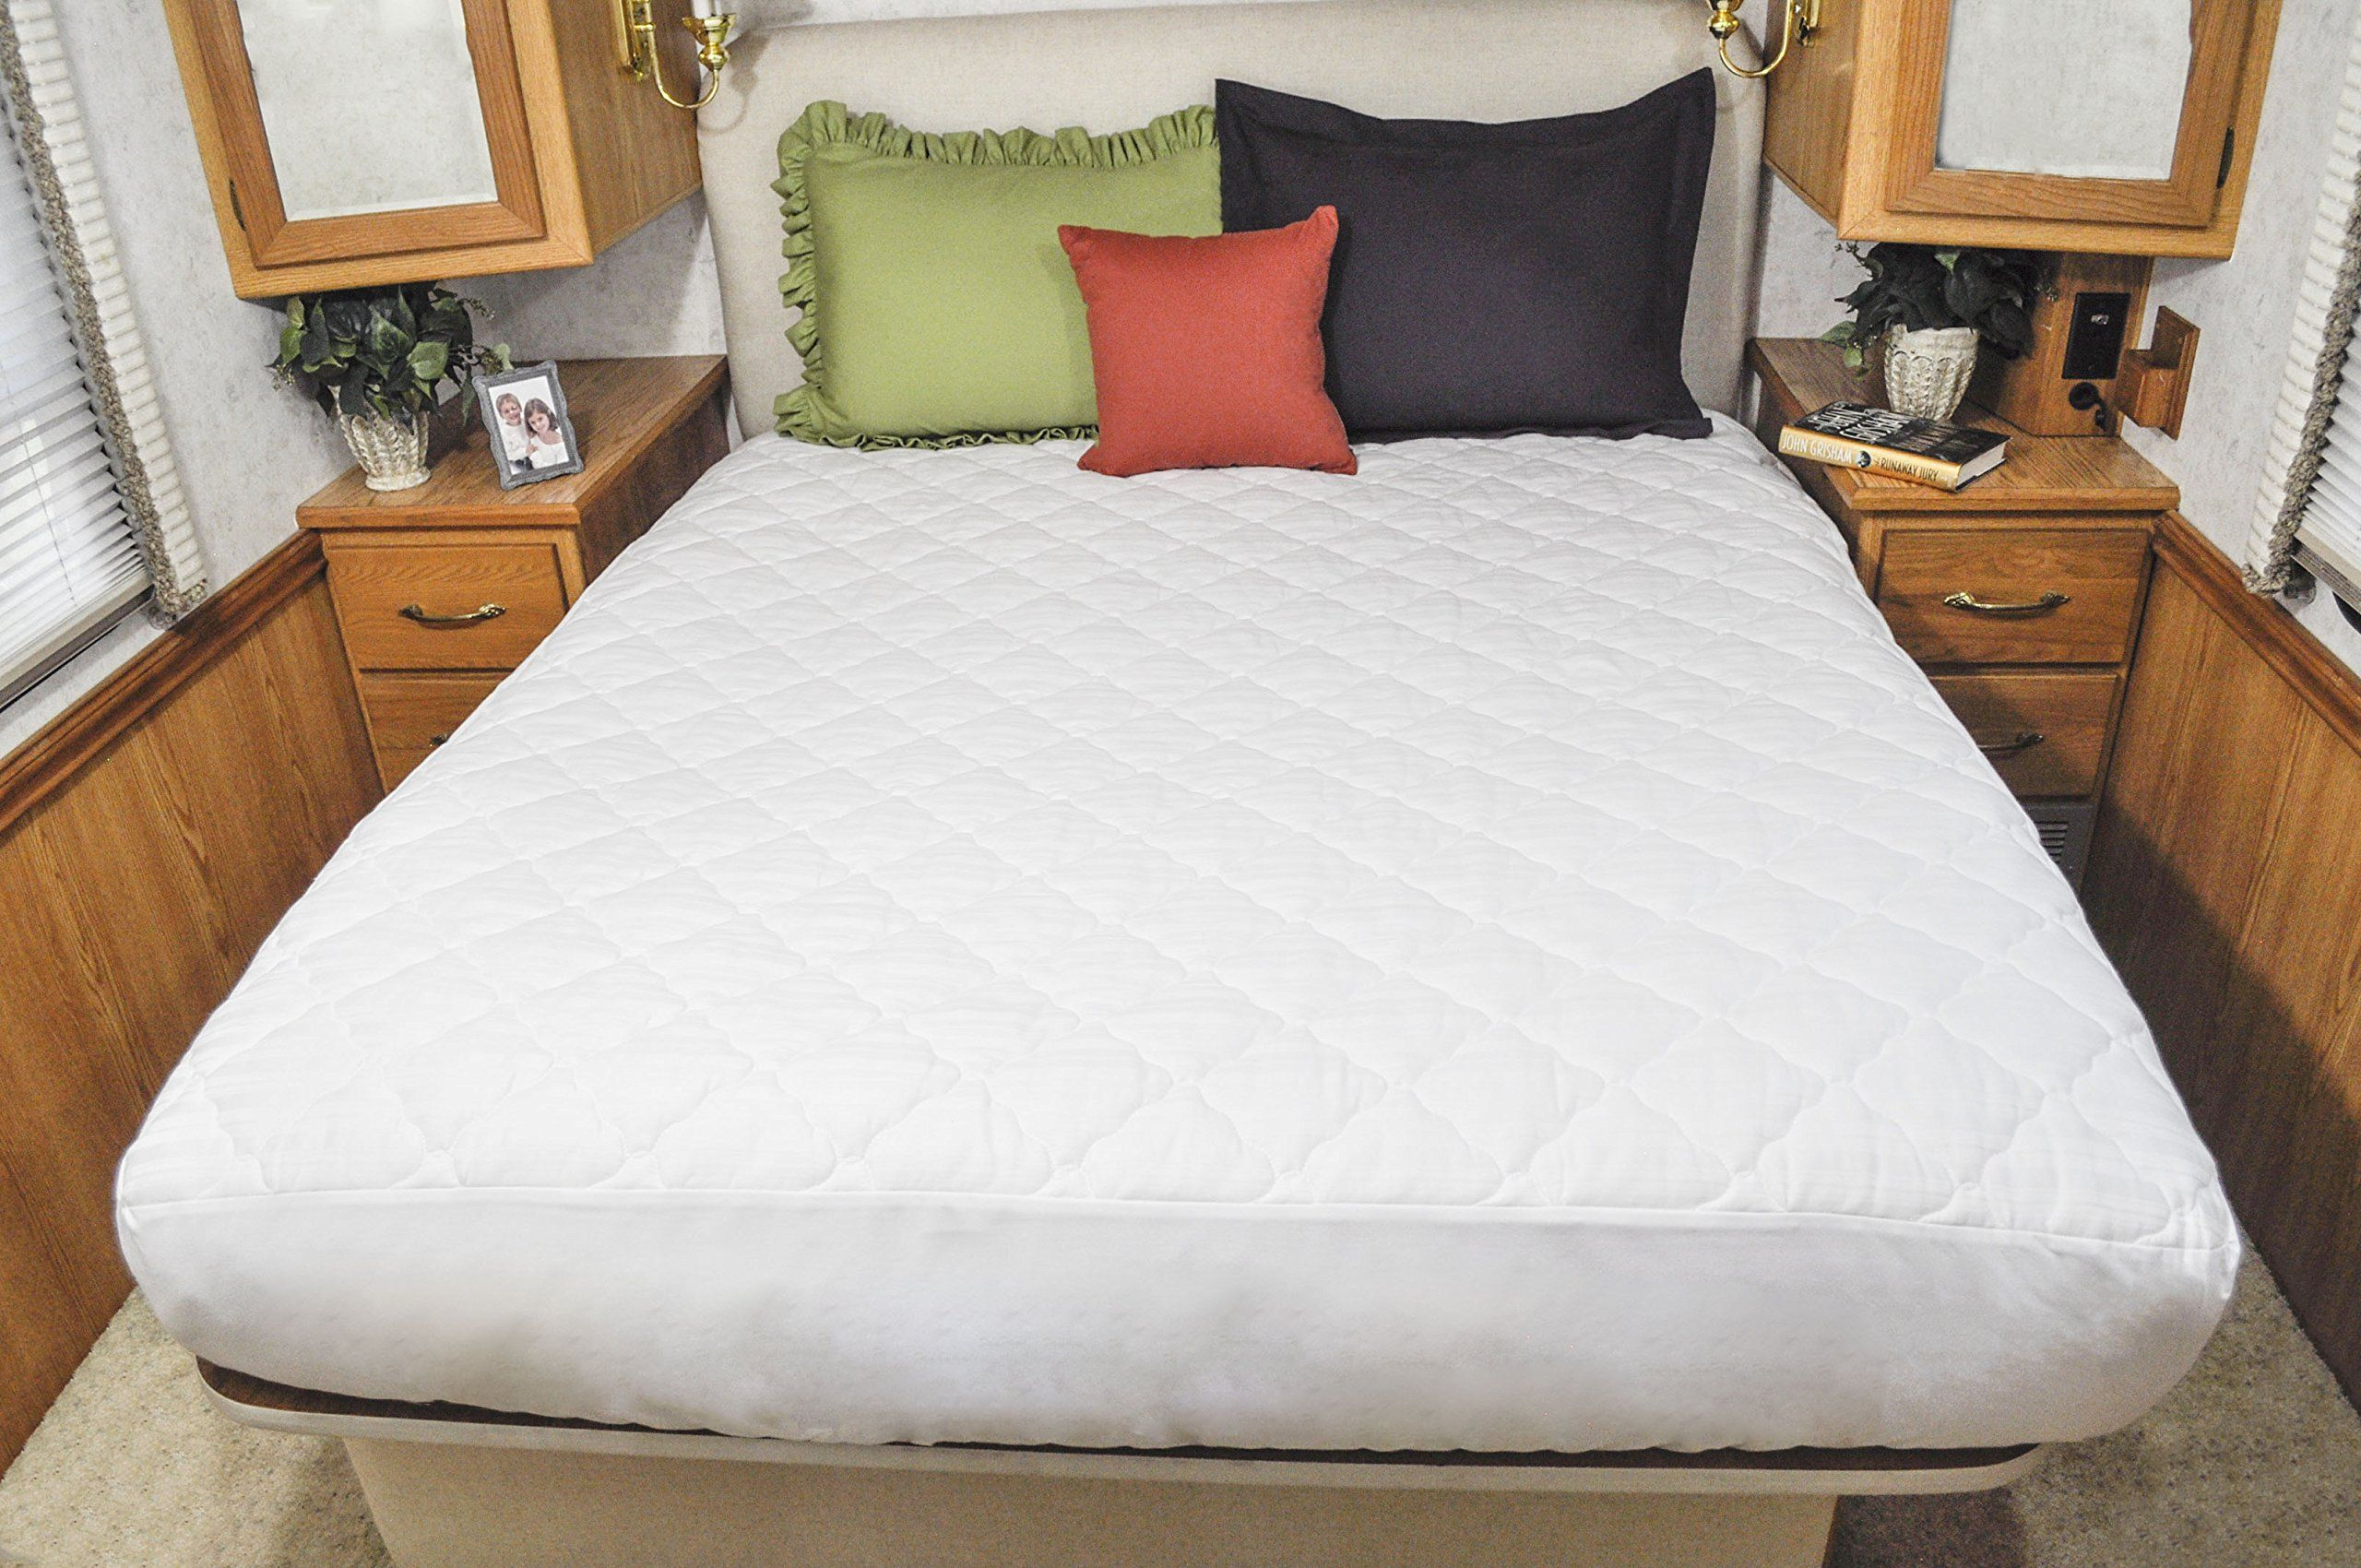 AB Lifestyles Camper King 72x80 USA MADE Mattress Pad, Quilted ...